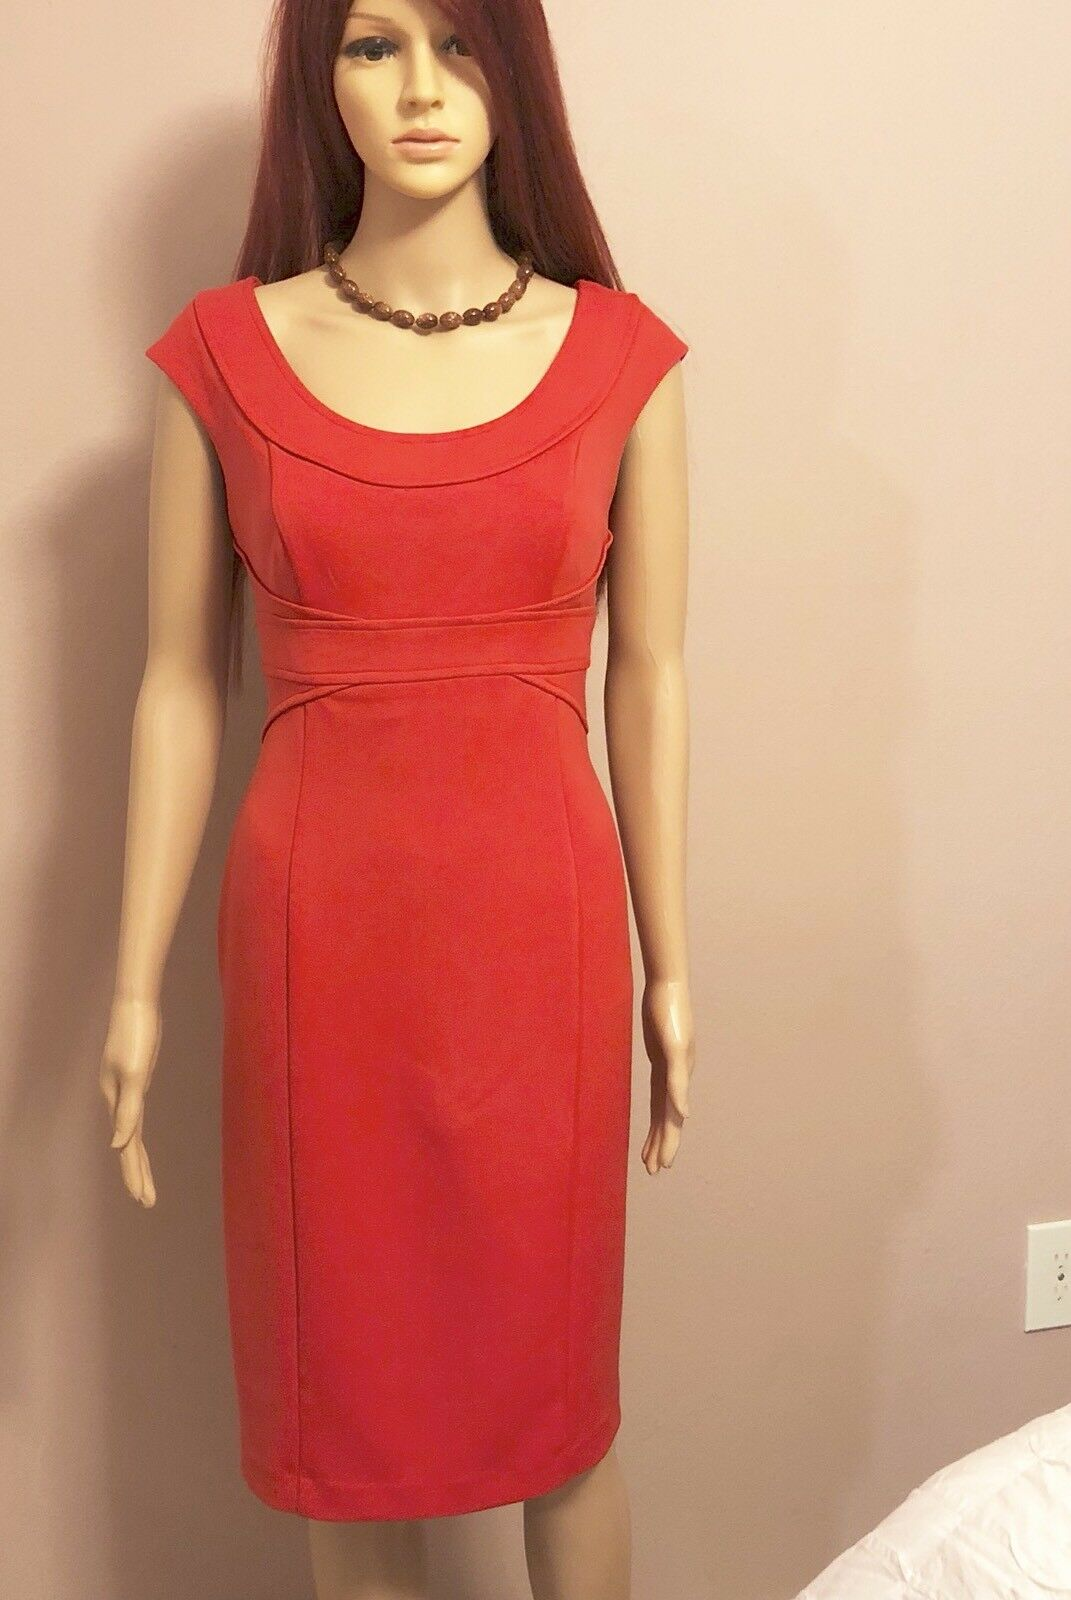 Maggy London Women's Red Dress Form Fit Size 10